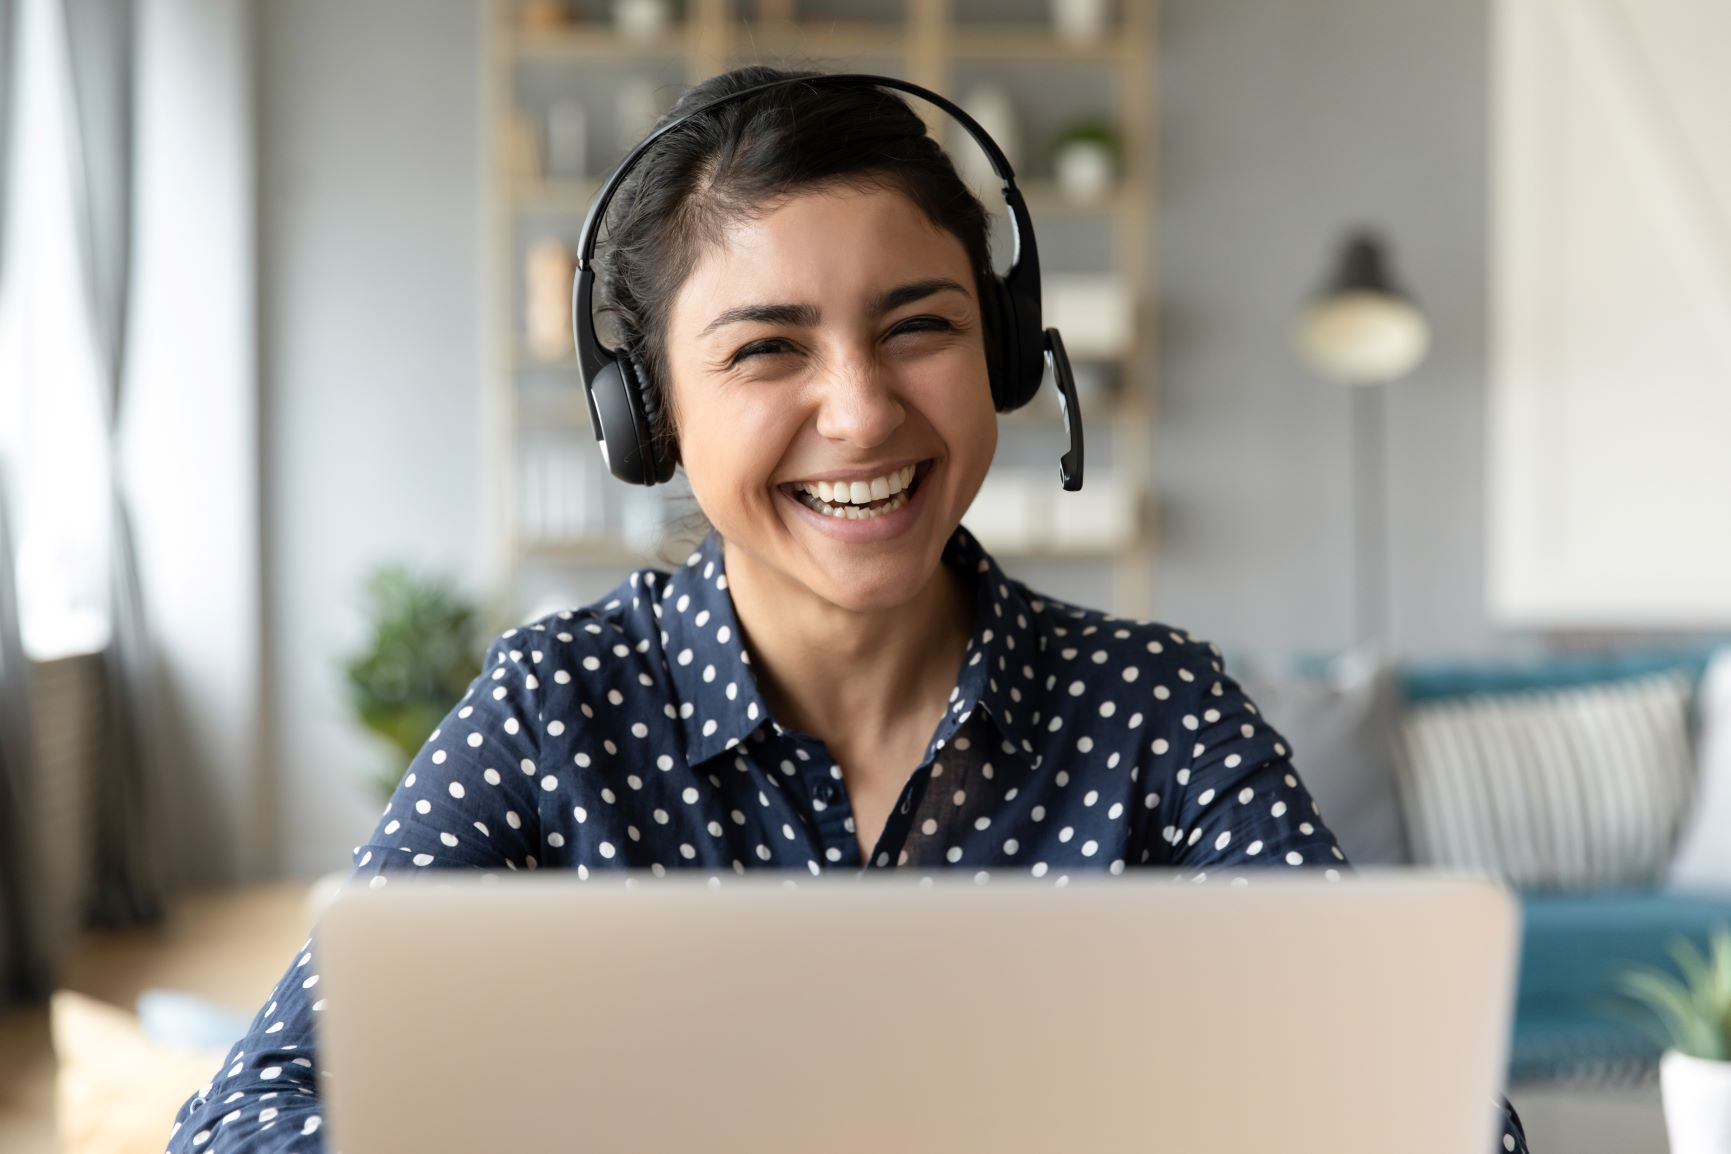 friendly woman with headset smiling at the camera